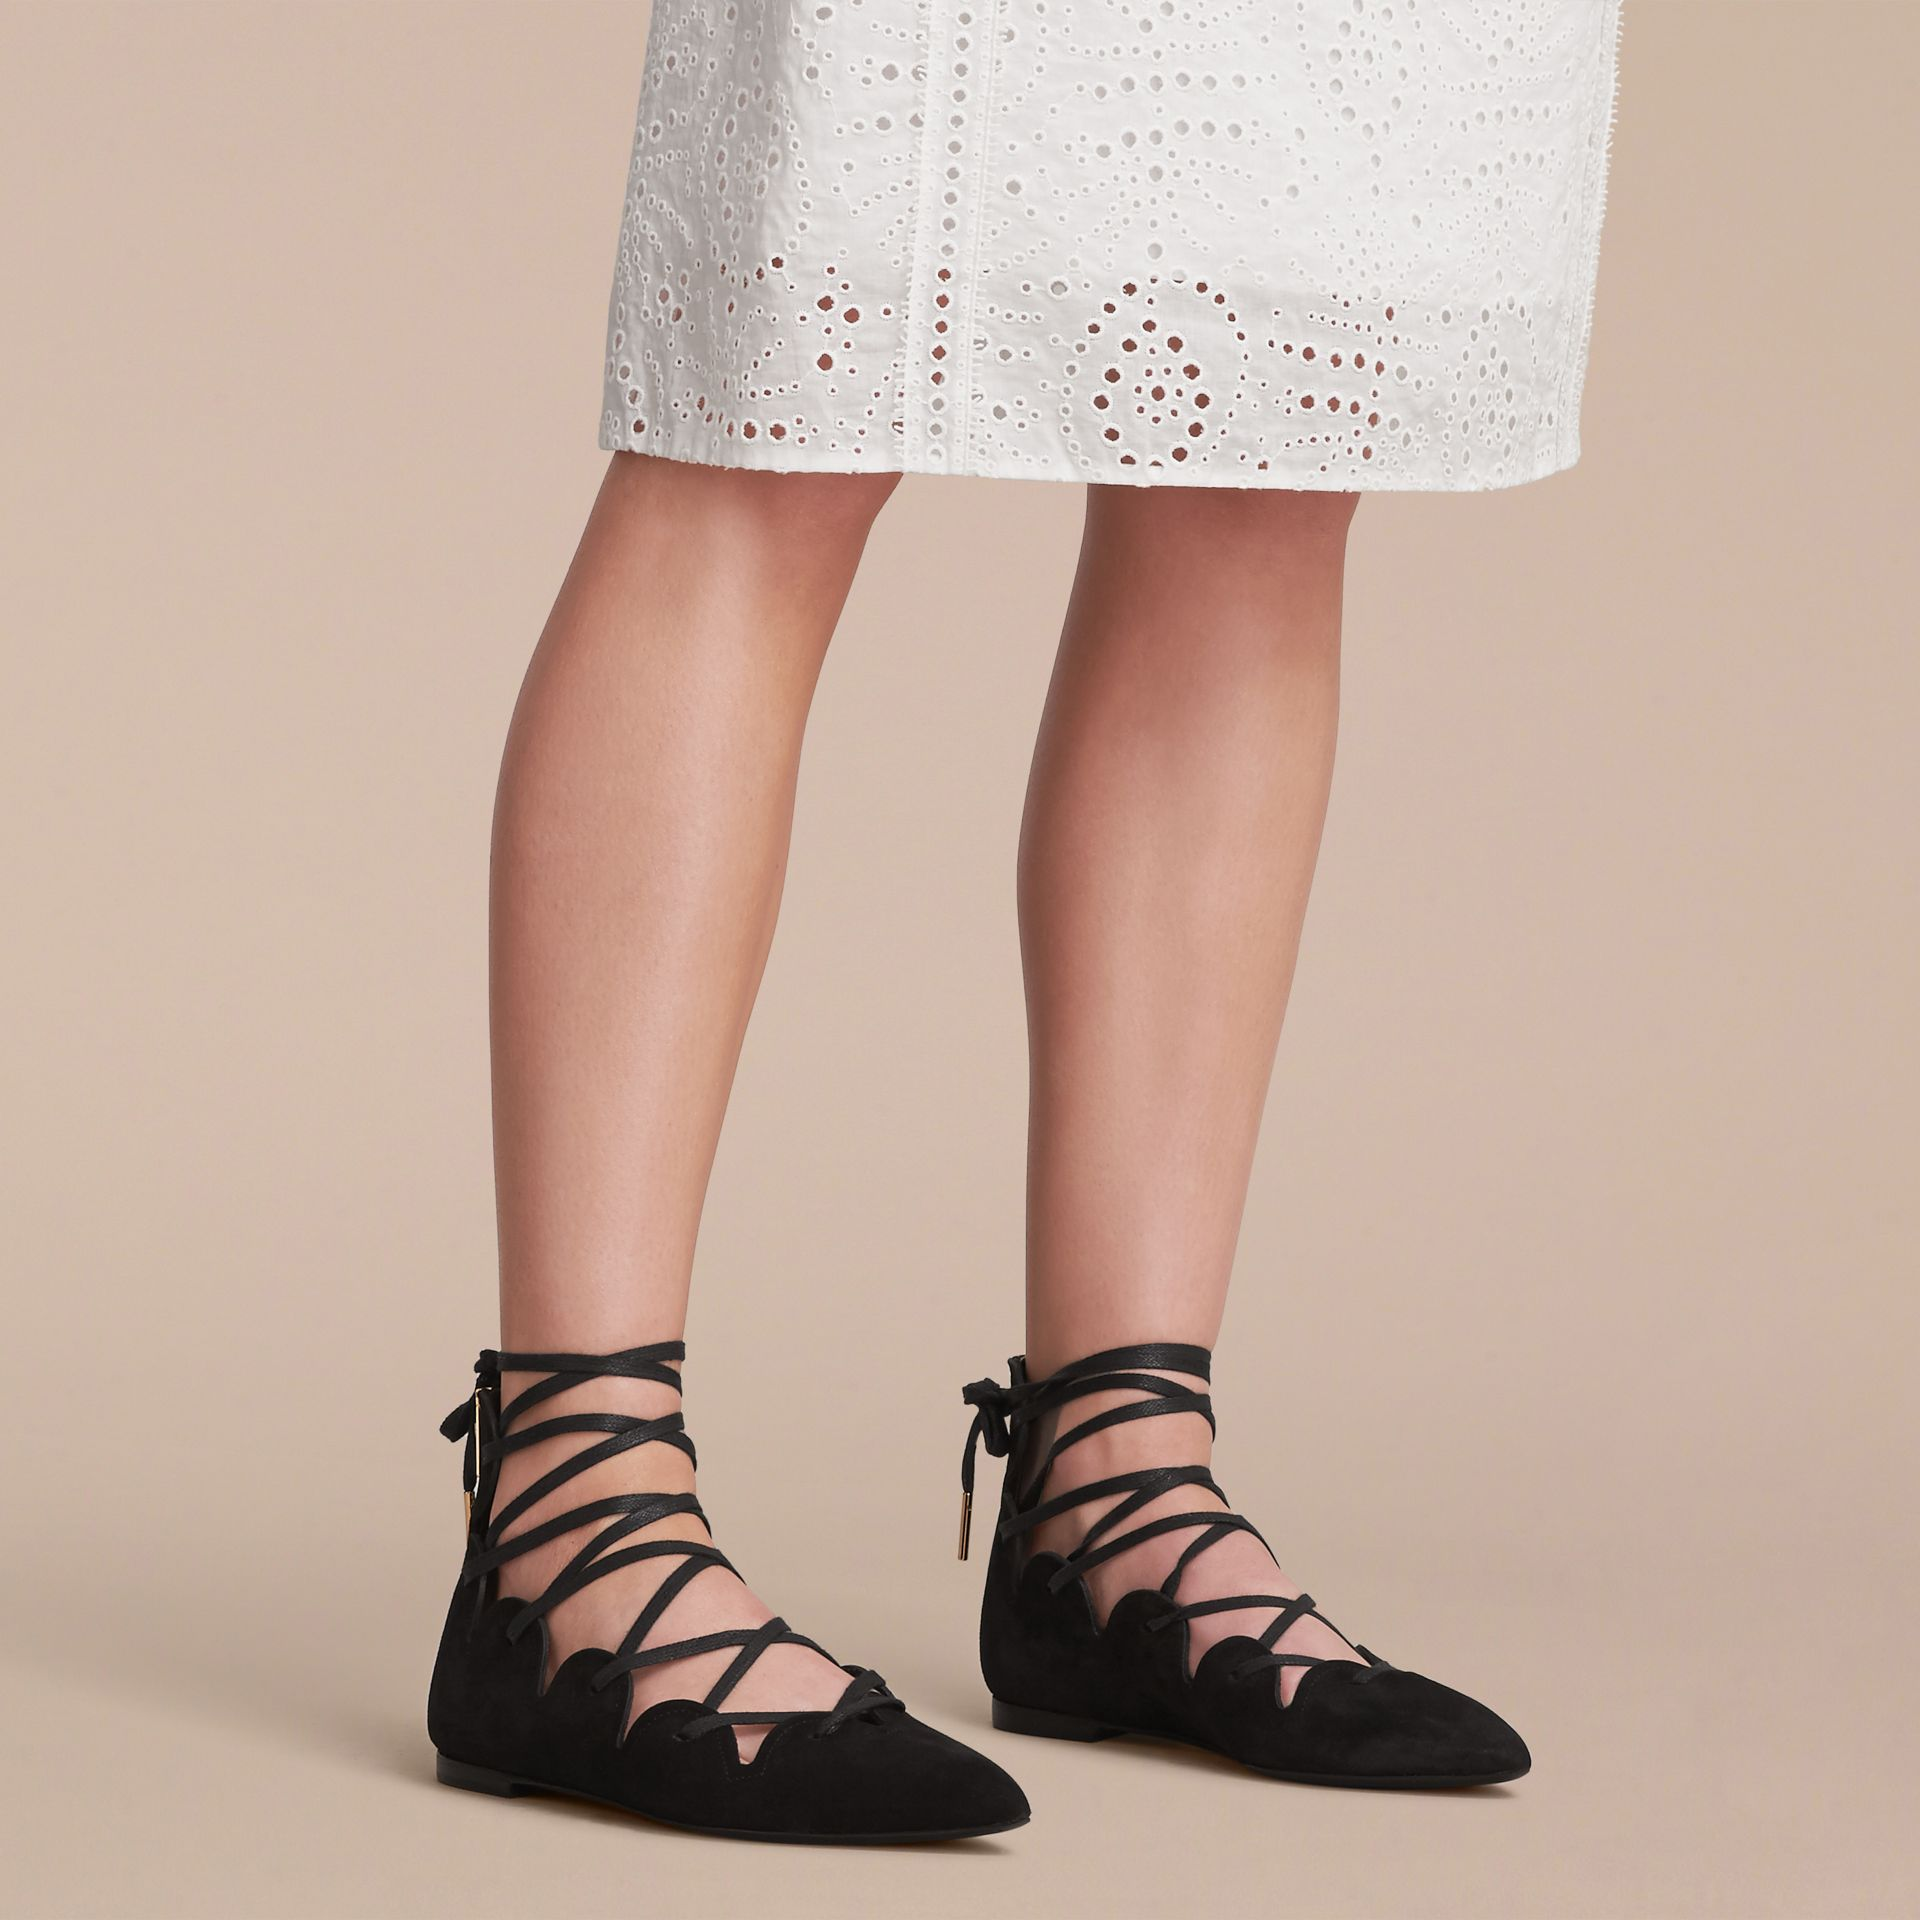 Scalloped Suede Lace-up Ballerinas in Black - Women | Burberry United States - gallery image 3